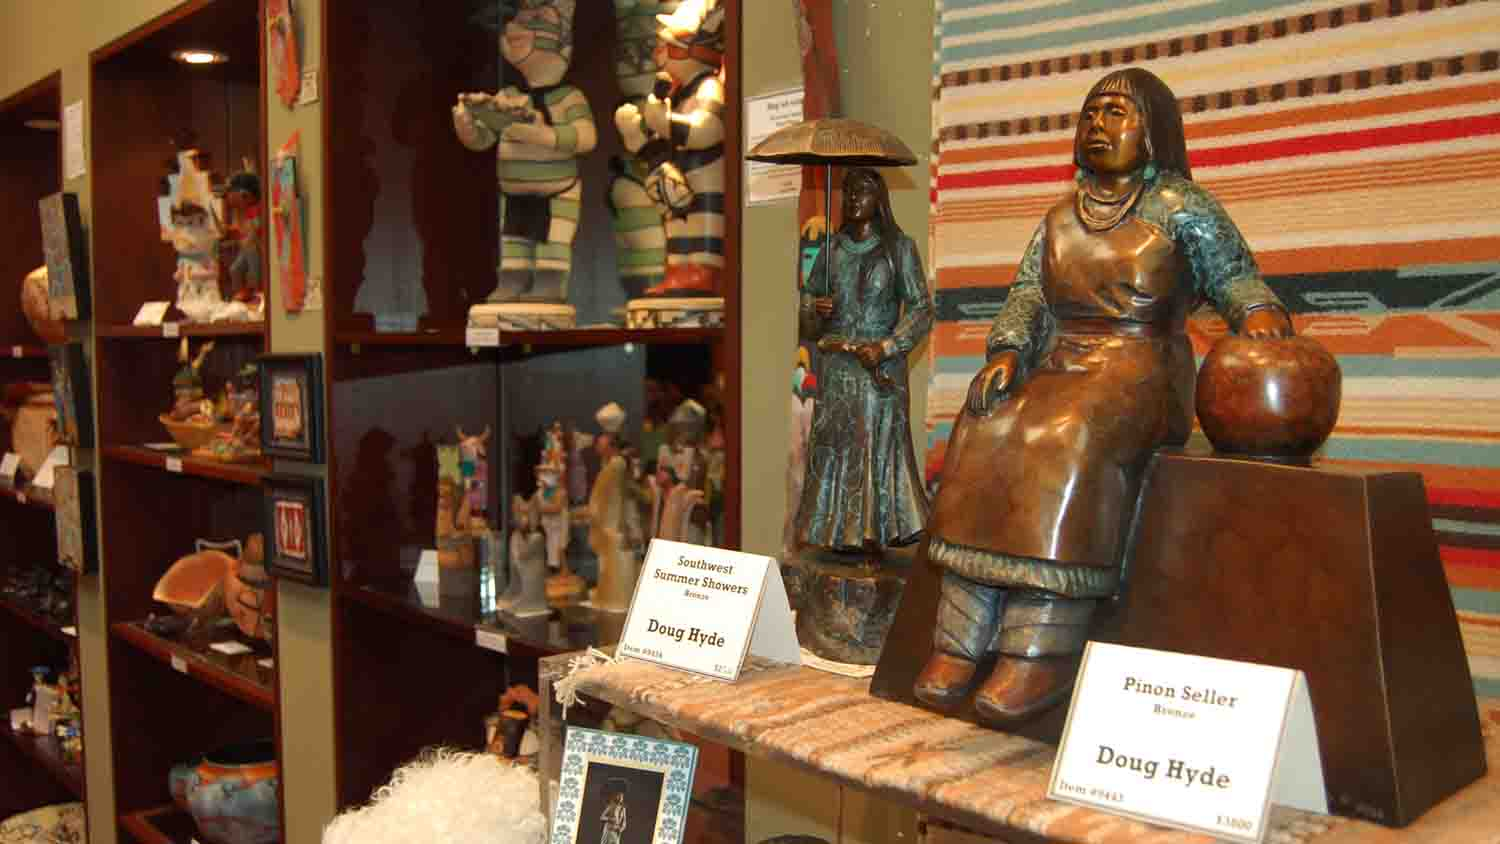 Frank and Katrina Basile Museum Store at the Eiteljorg Museum of American Indians and Western Art 1